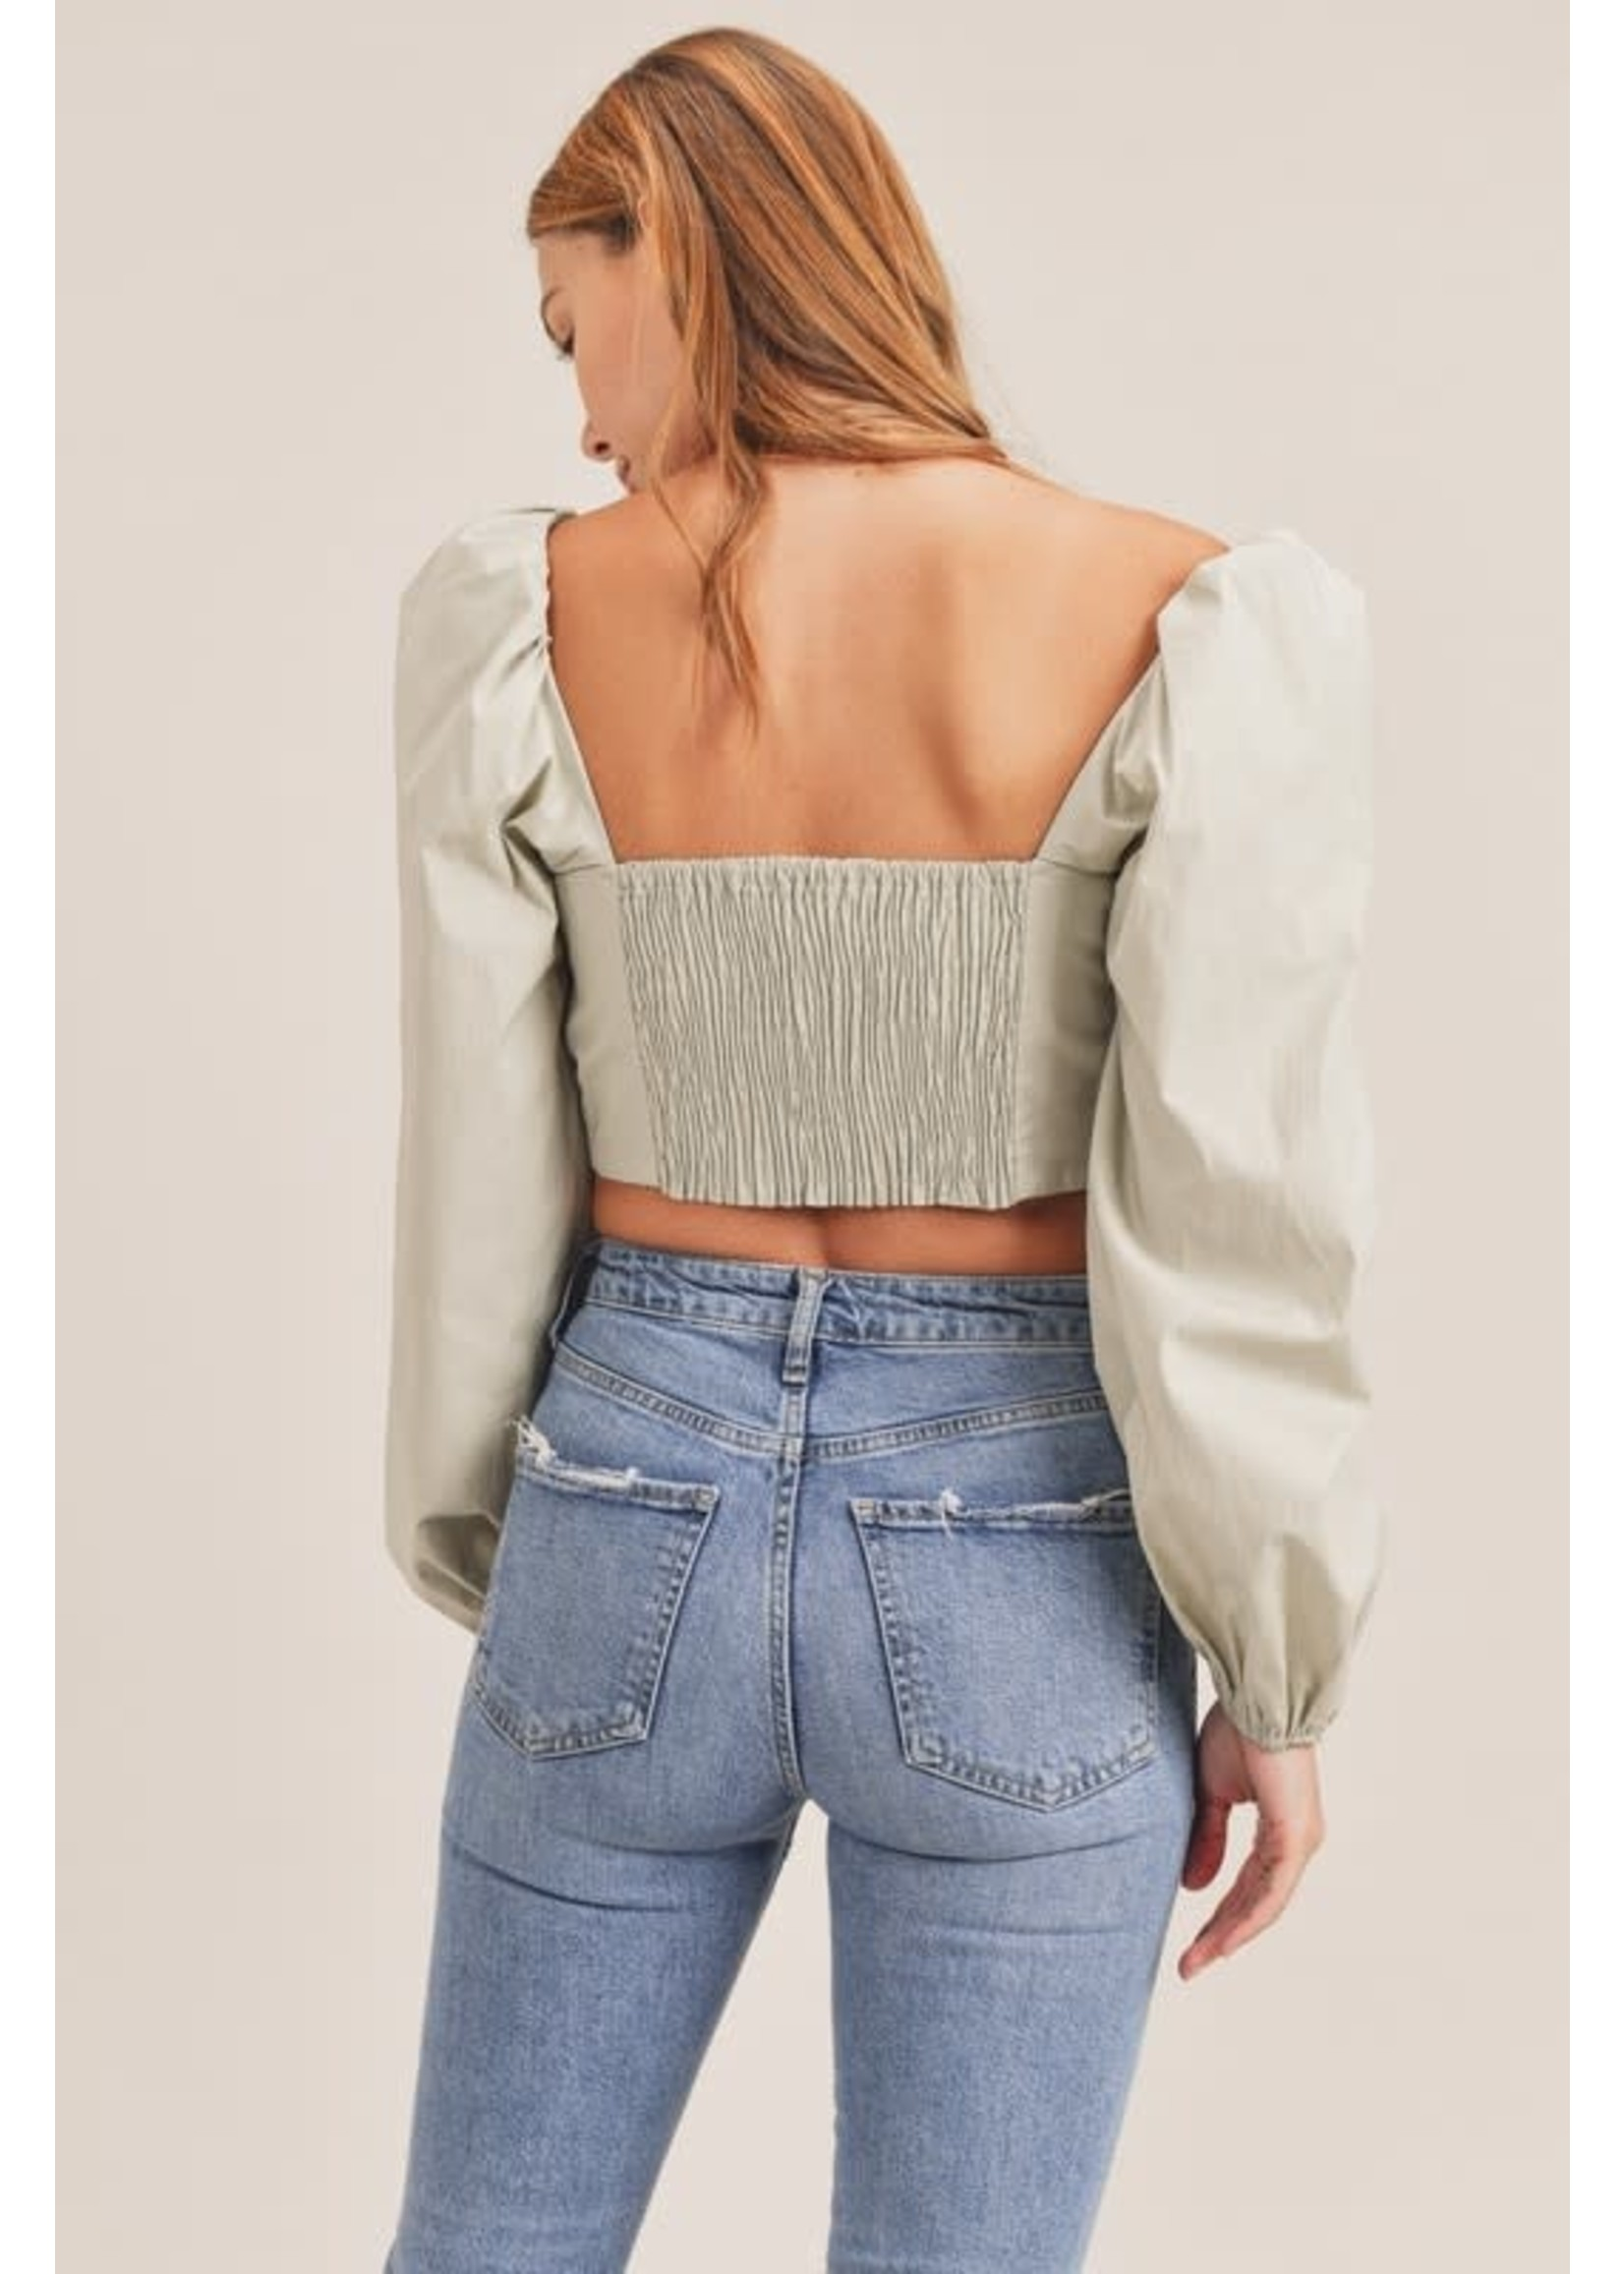 Mable Front Tying Puff Sleeve Crop Top - MT1241